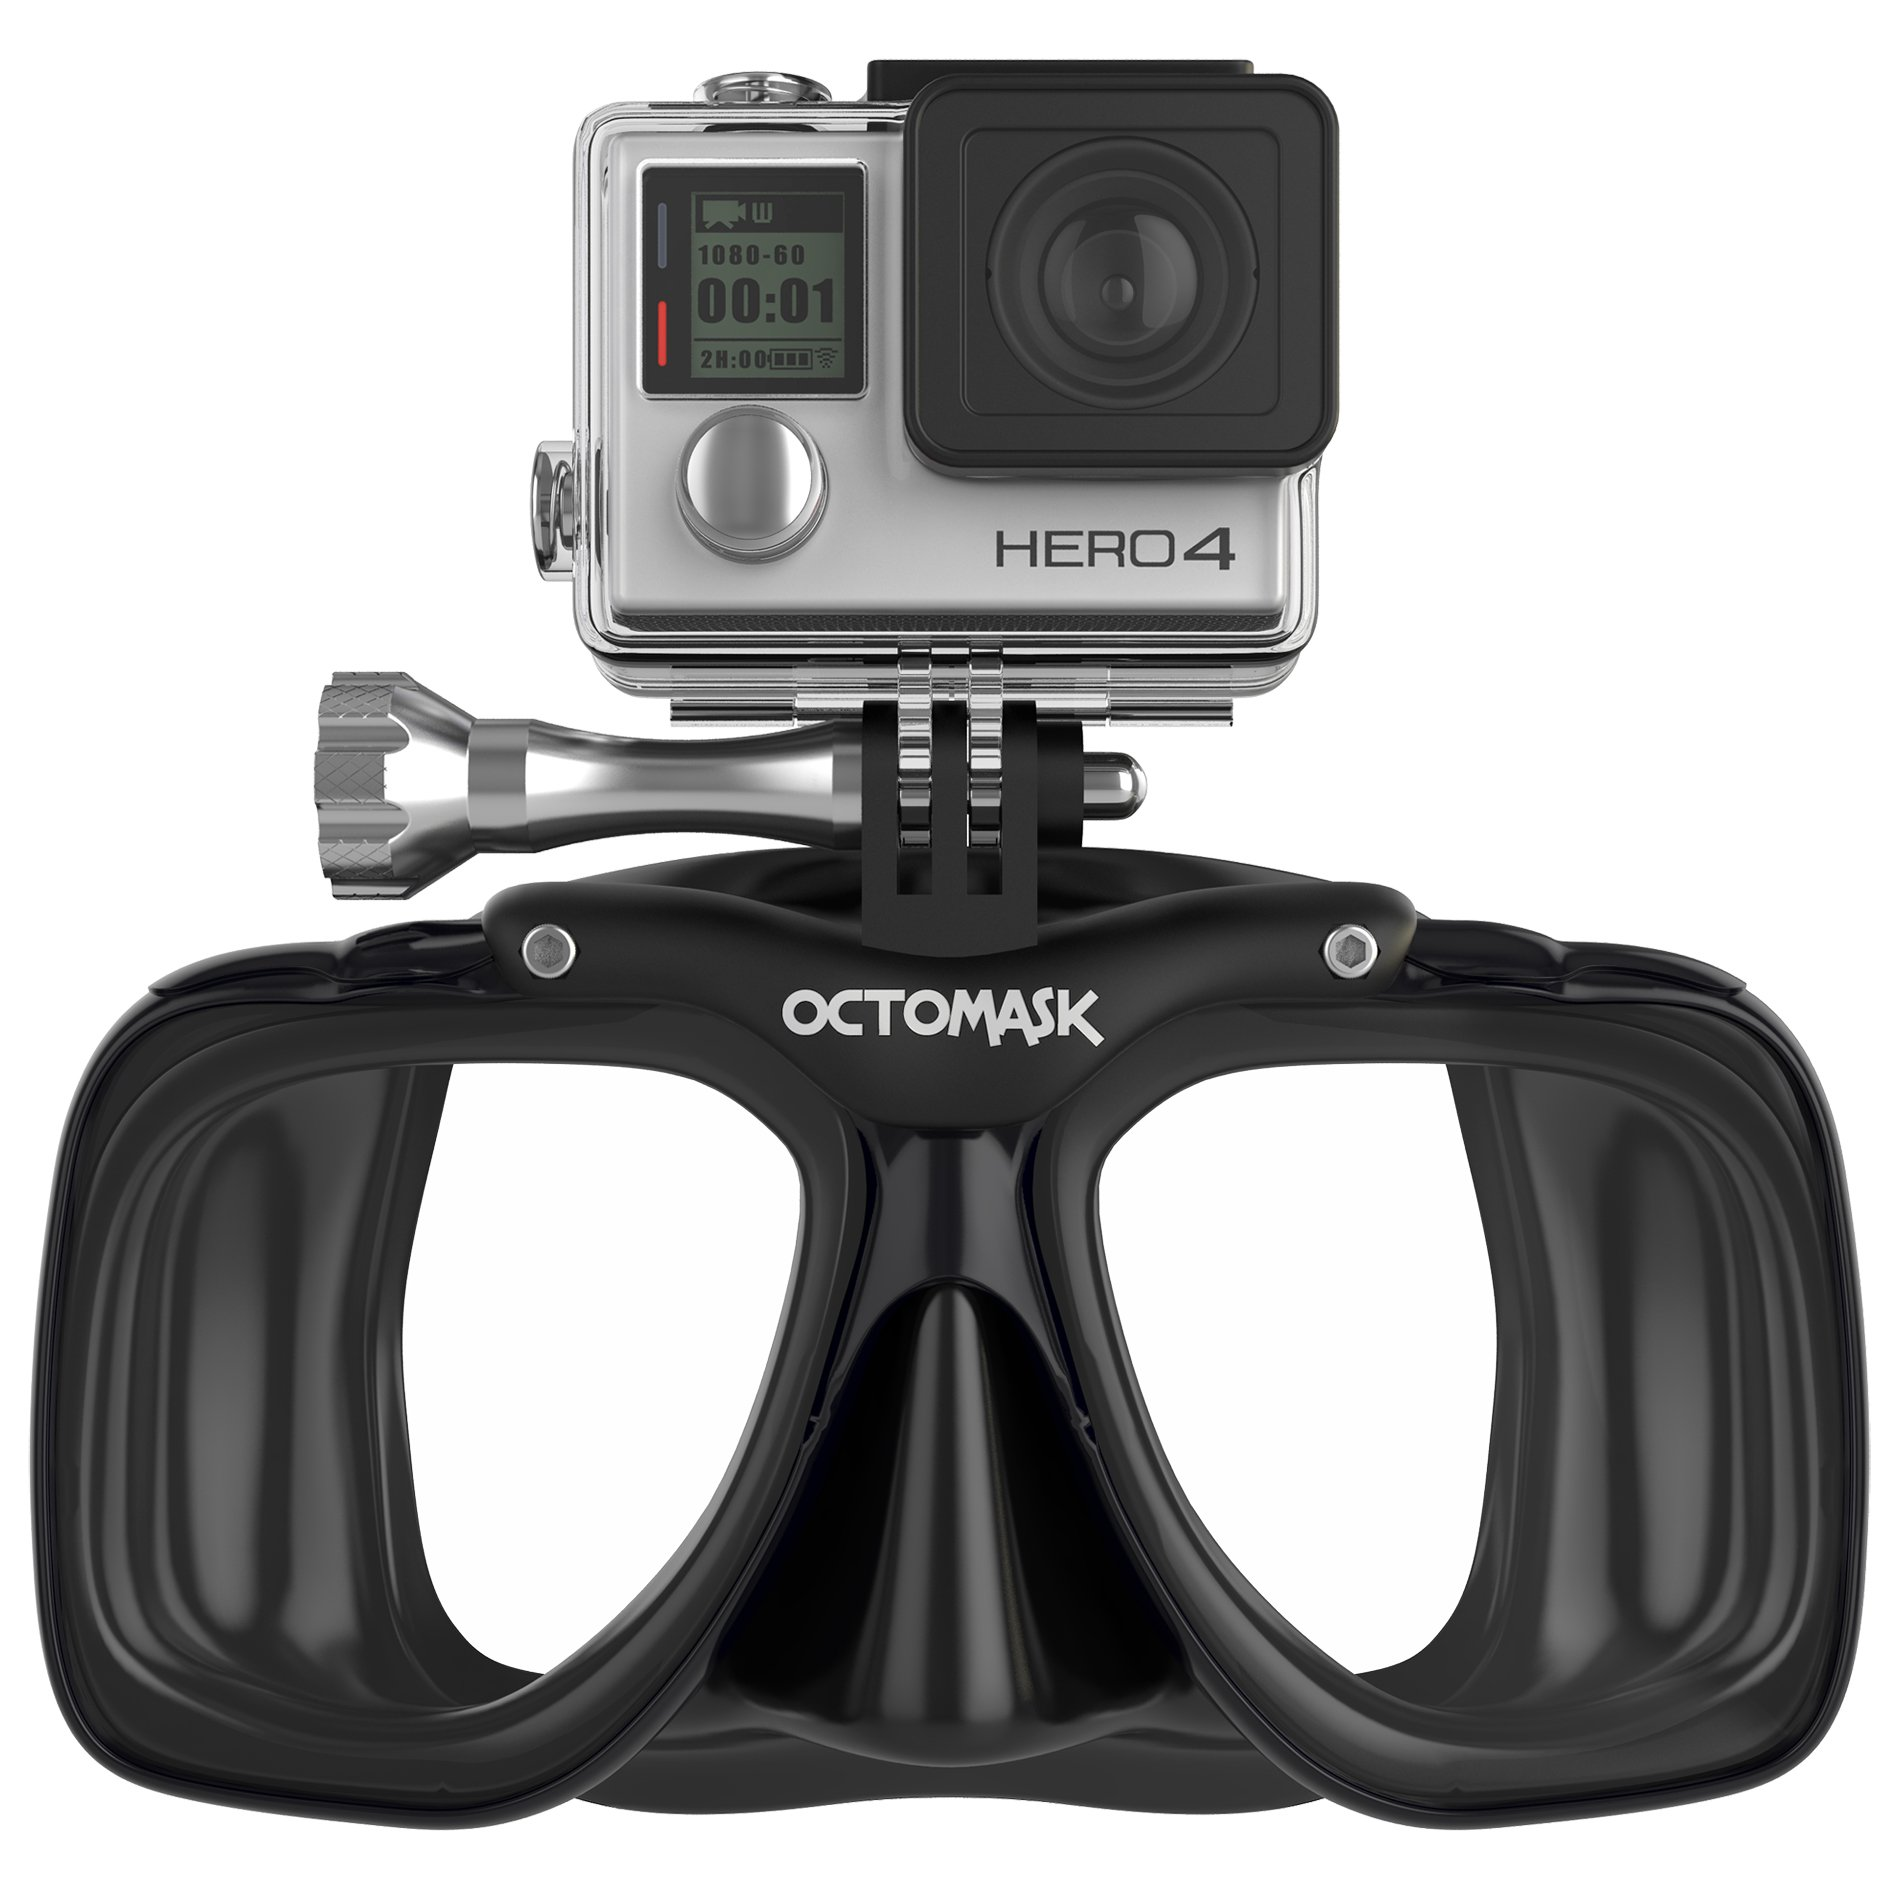 Hero5 and Session Dive Mask for Scuba Diving and Snorkeling compatible with GoPro by OCTOMASK